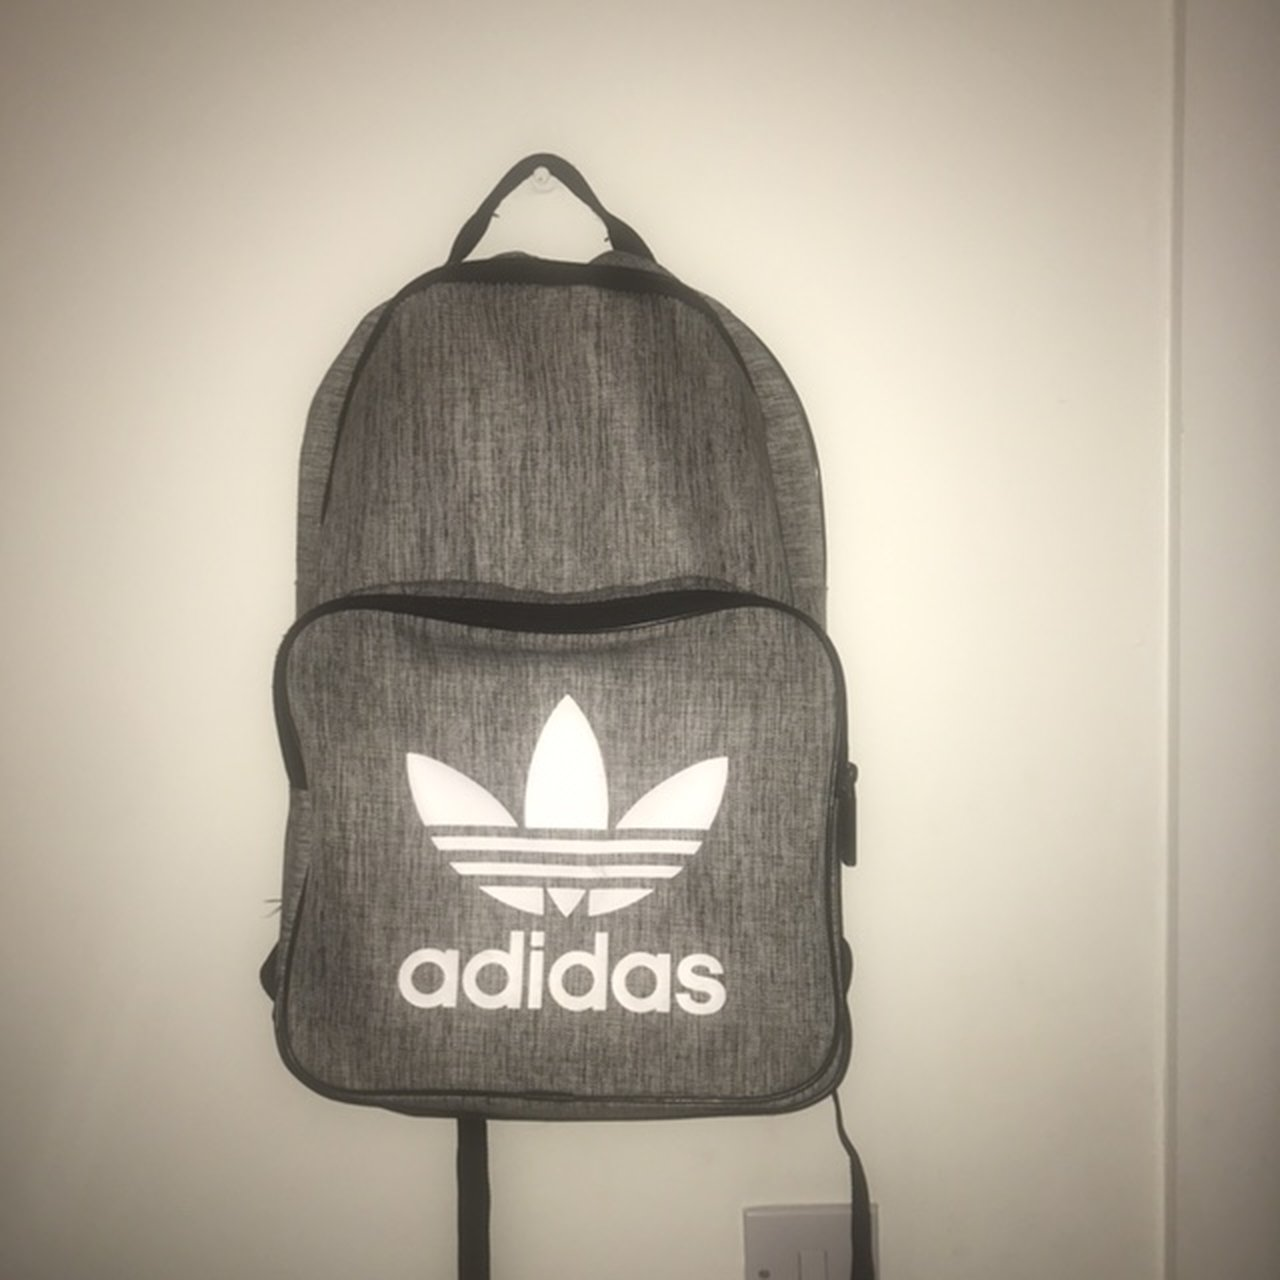 99faeed7c182 Grey adidas backpack. Bought for £30